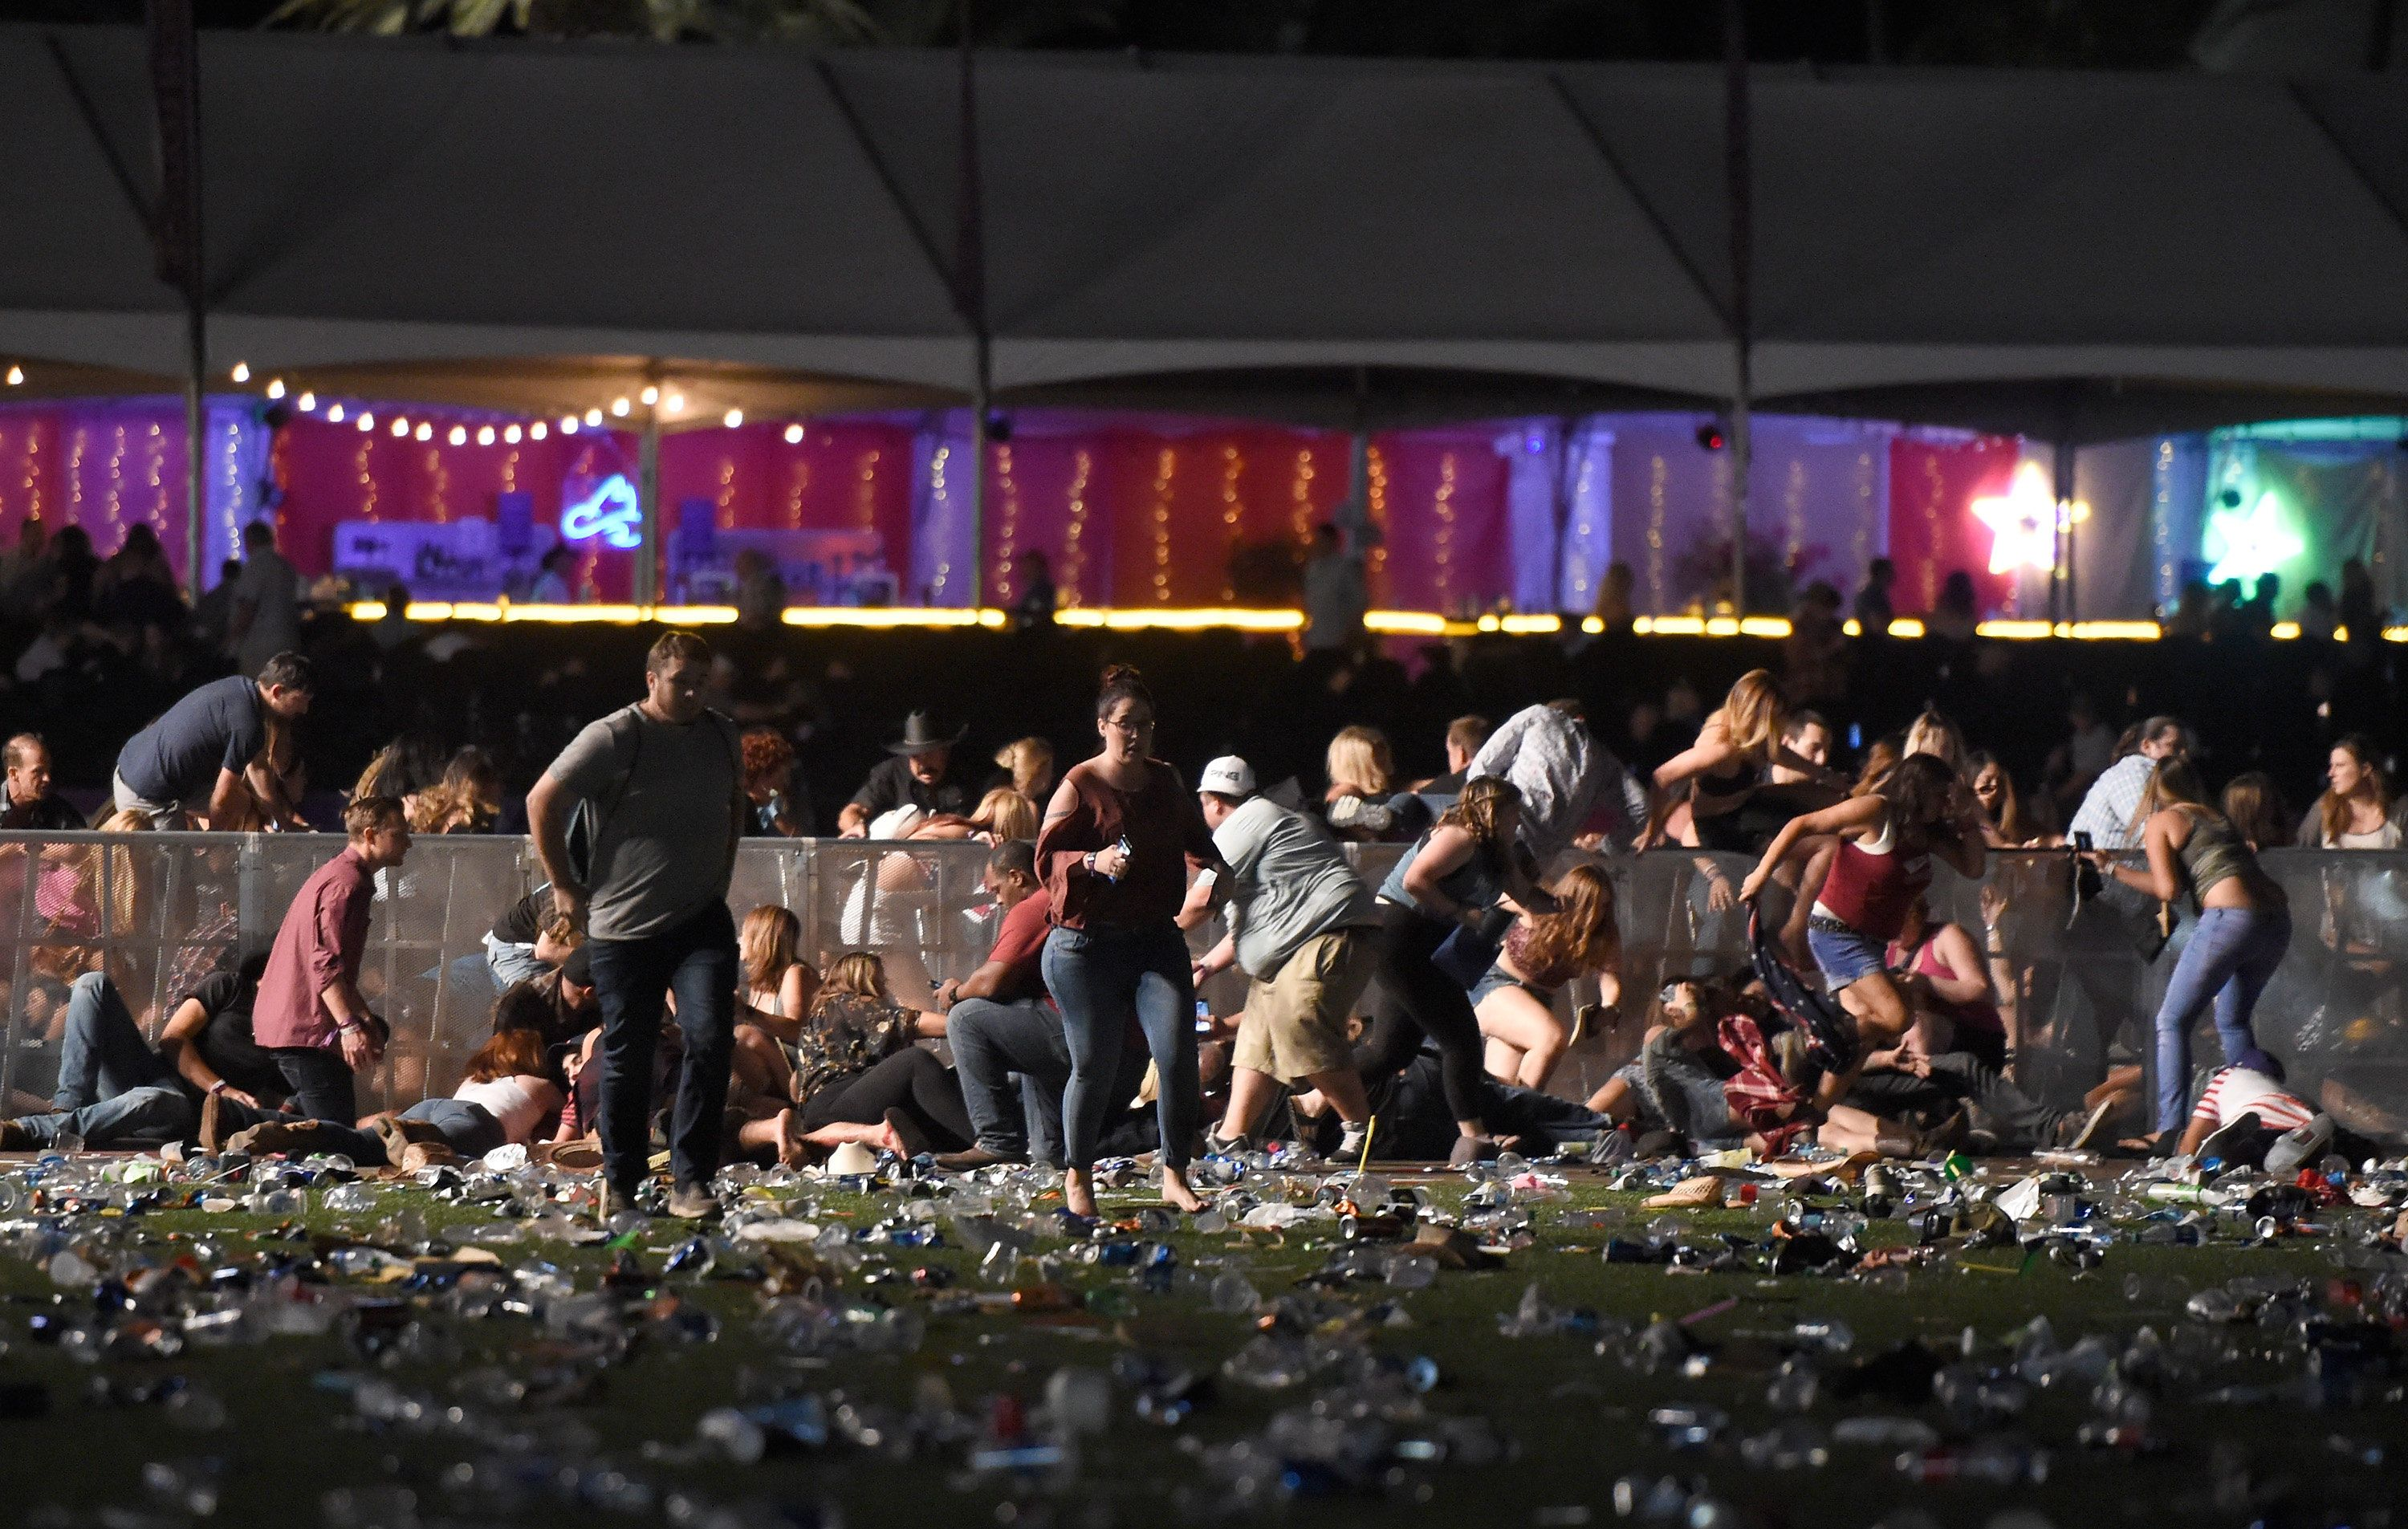 Las Vegas deadly concert shooting: GoFundMe aids victims, how to help